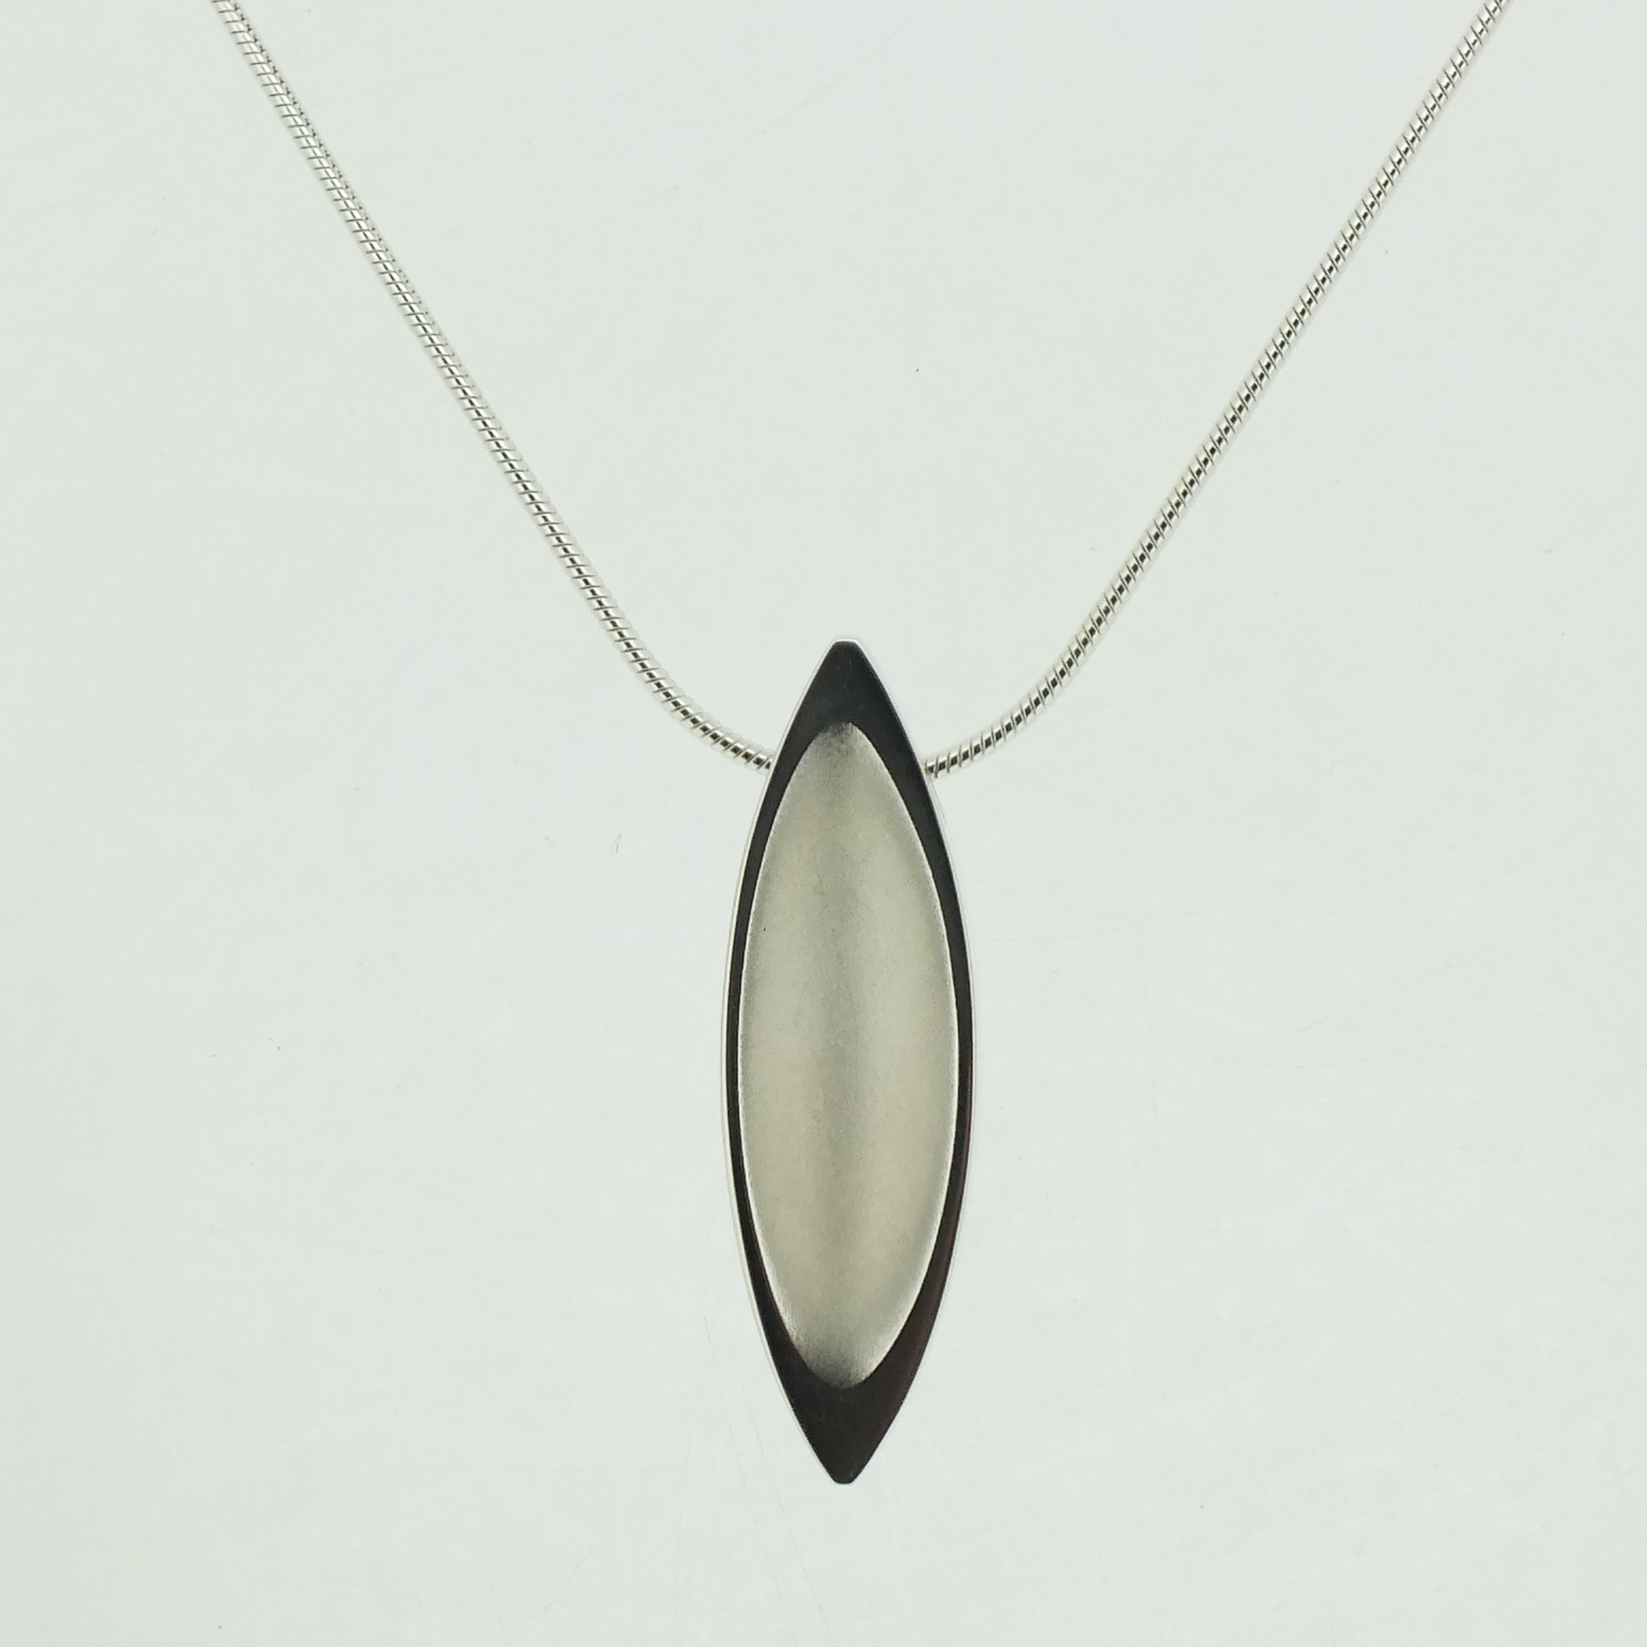 Mandorla Pendant in textured sterling silver